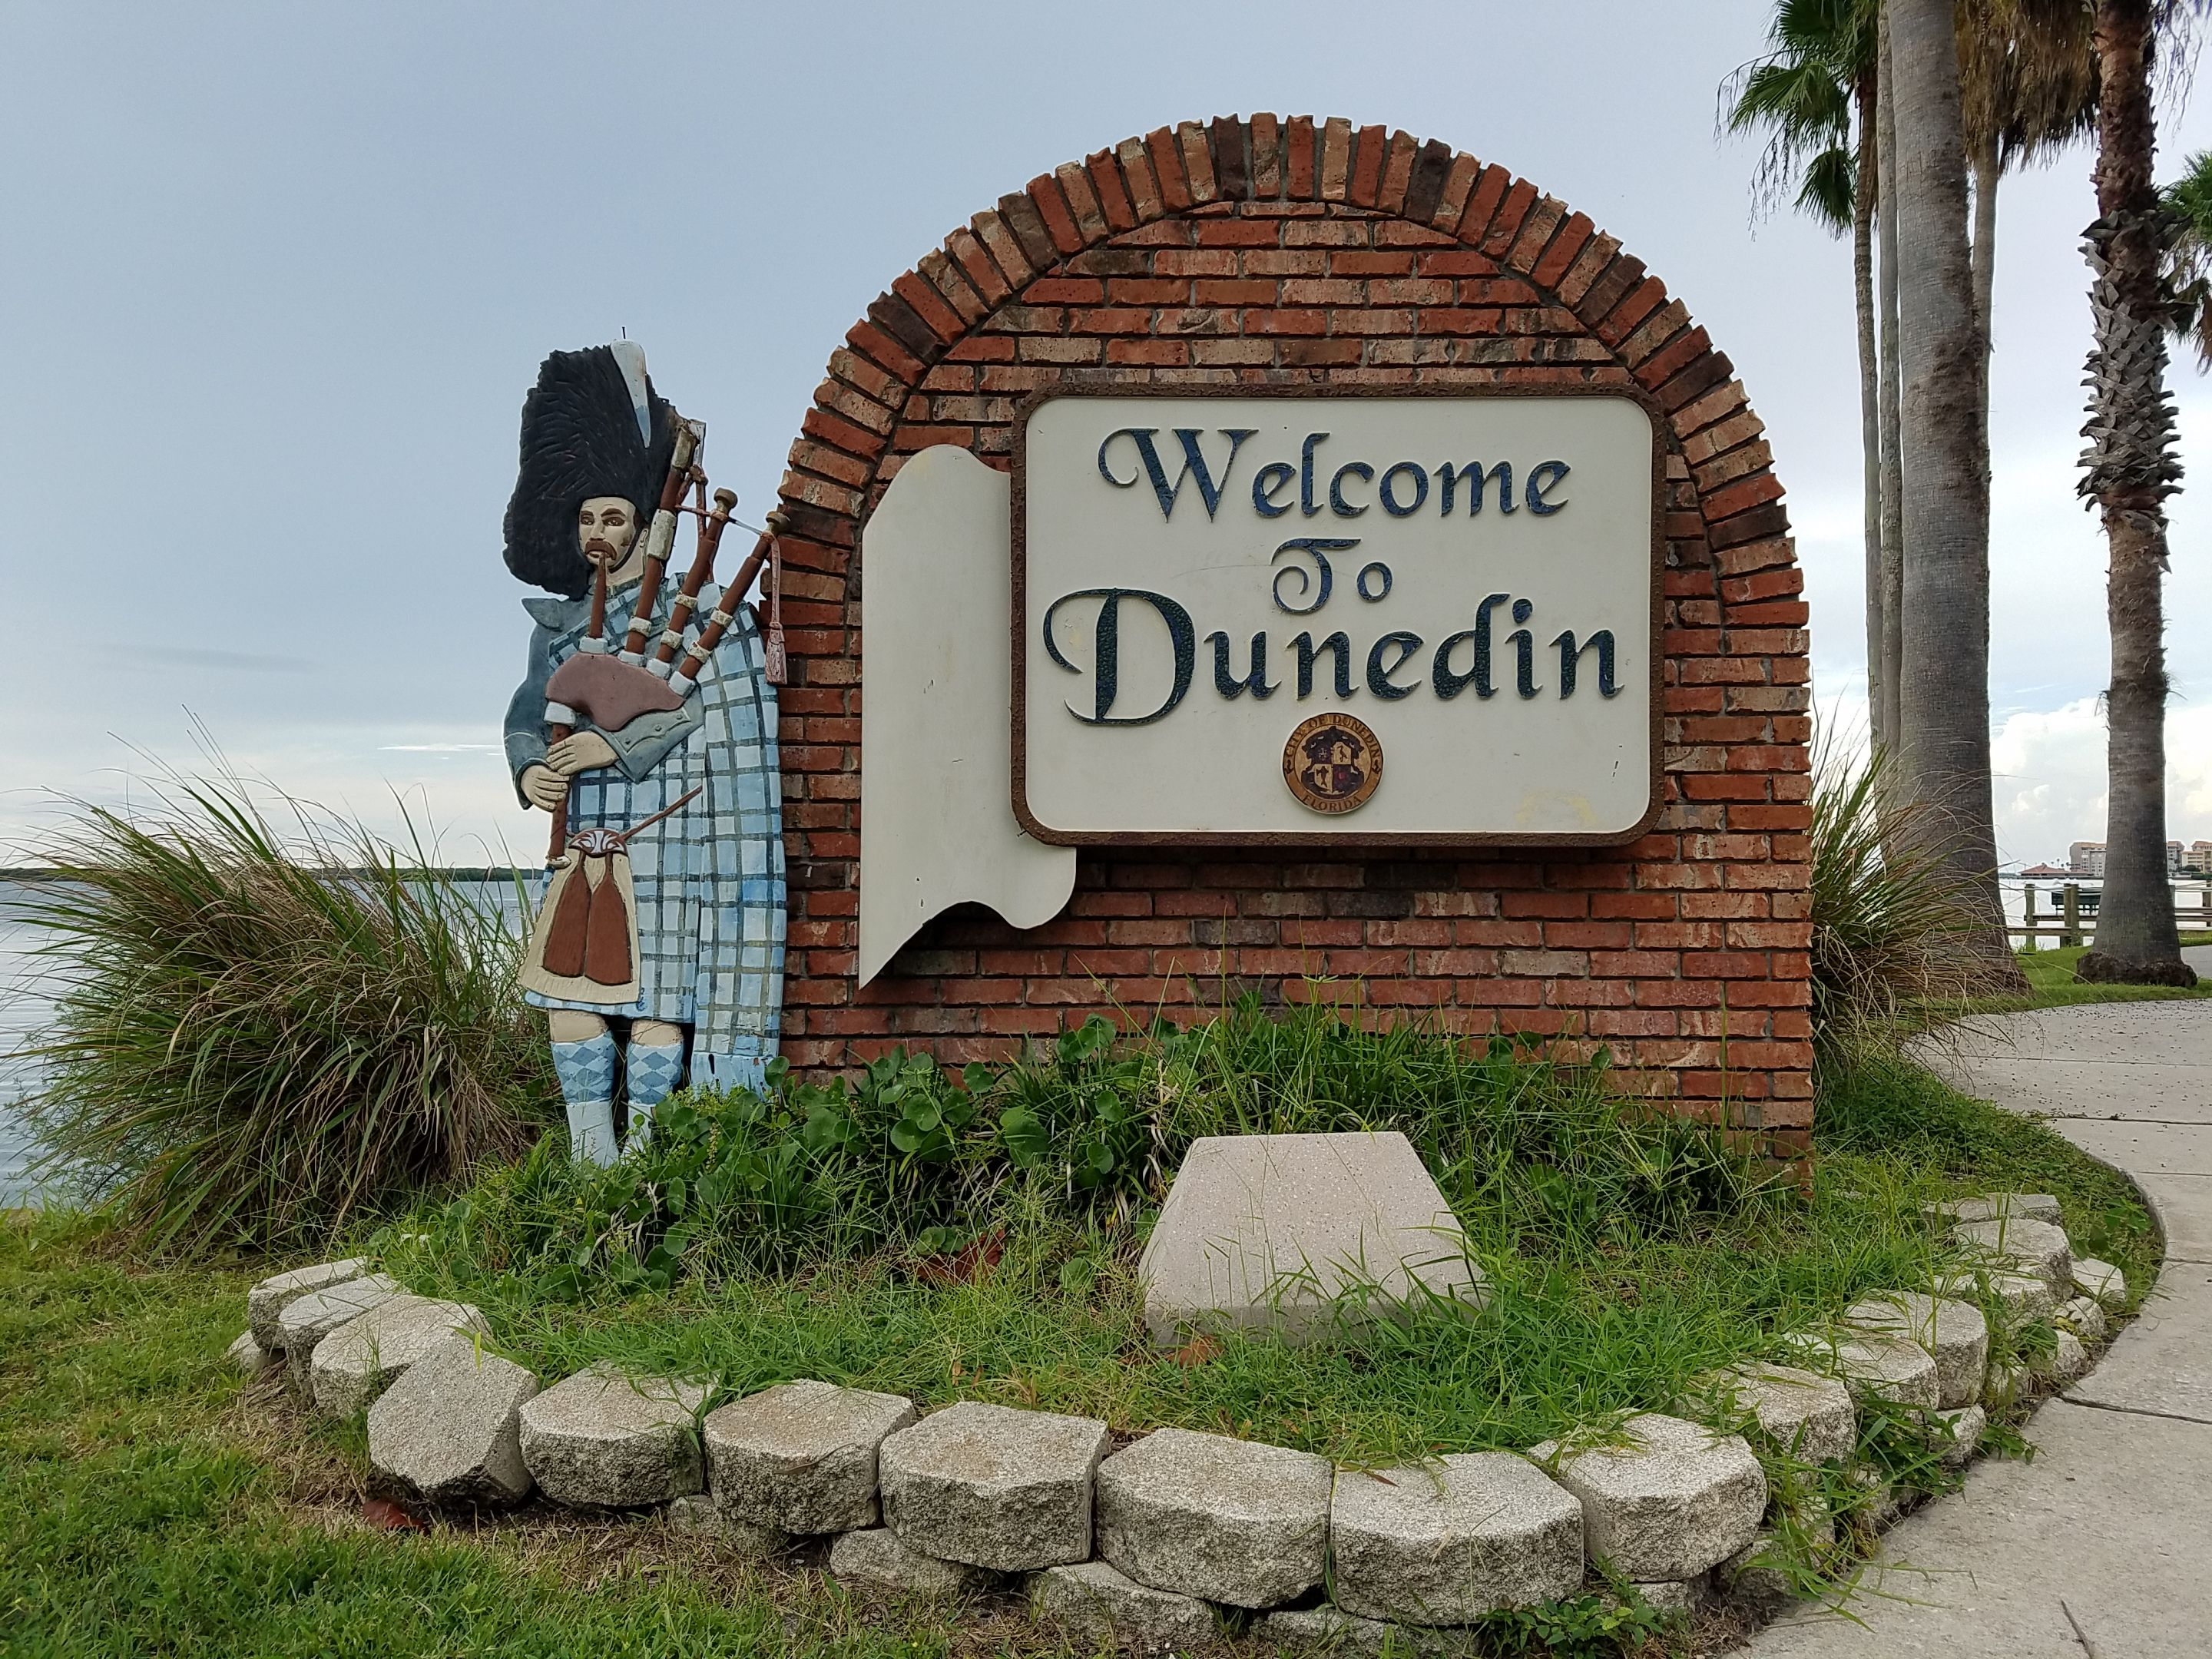 Dunedin Florida | Real Estate For Sale Real Estate for sale in Dunedin, Florida. There's plenty of things to do in this part of town, great restaurants and night life. Be sure to visit downtown as it is amazing 🔥 This link is a direct feed from the MLS and is up dated every 5 minutes. Let me know how I can help 👌